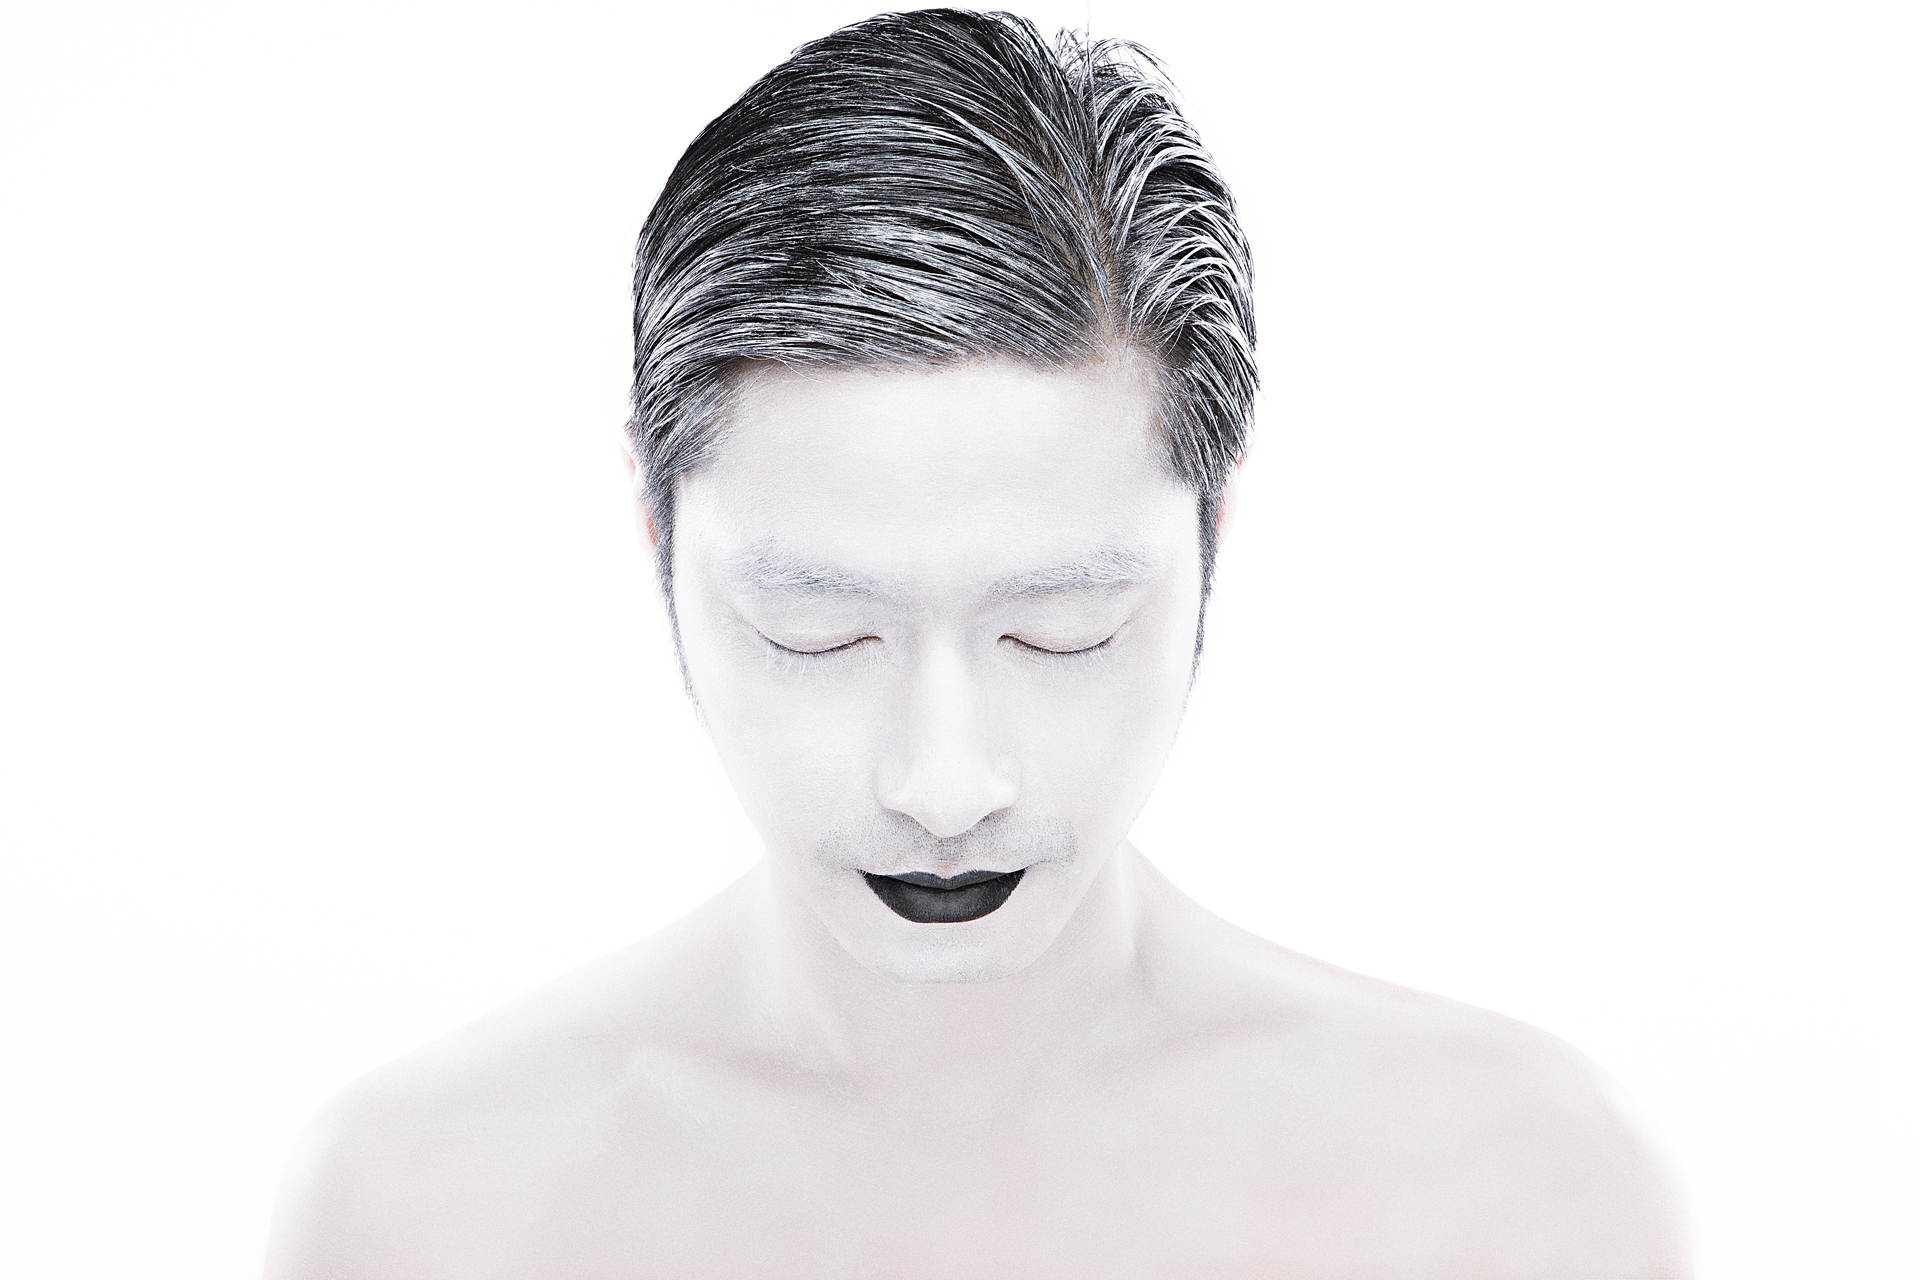 Gregory Wong 王宗堯